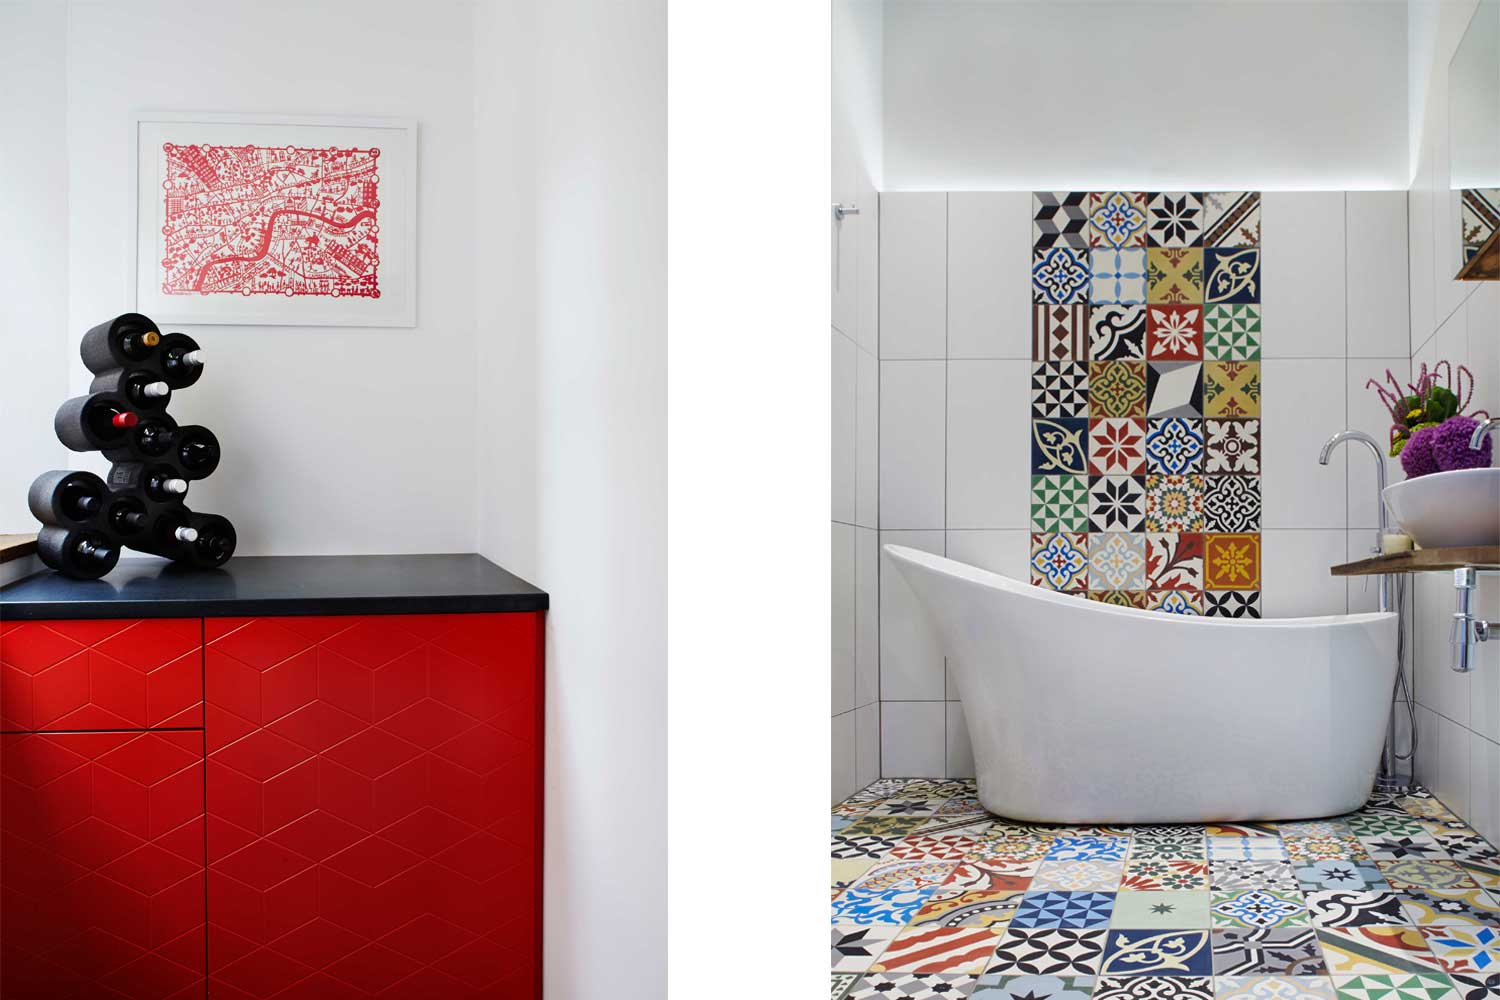 Cassidy_Hughes_Design_Encaustic_Tiles_Red_Unit_Freestanding_Bath